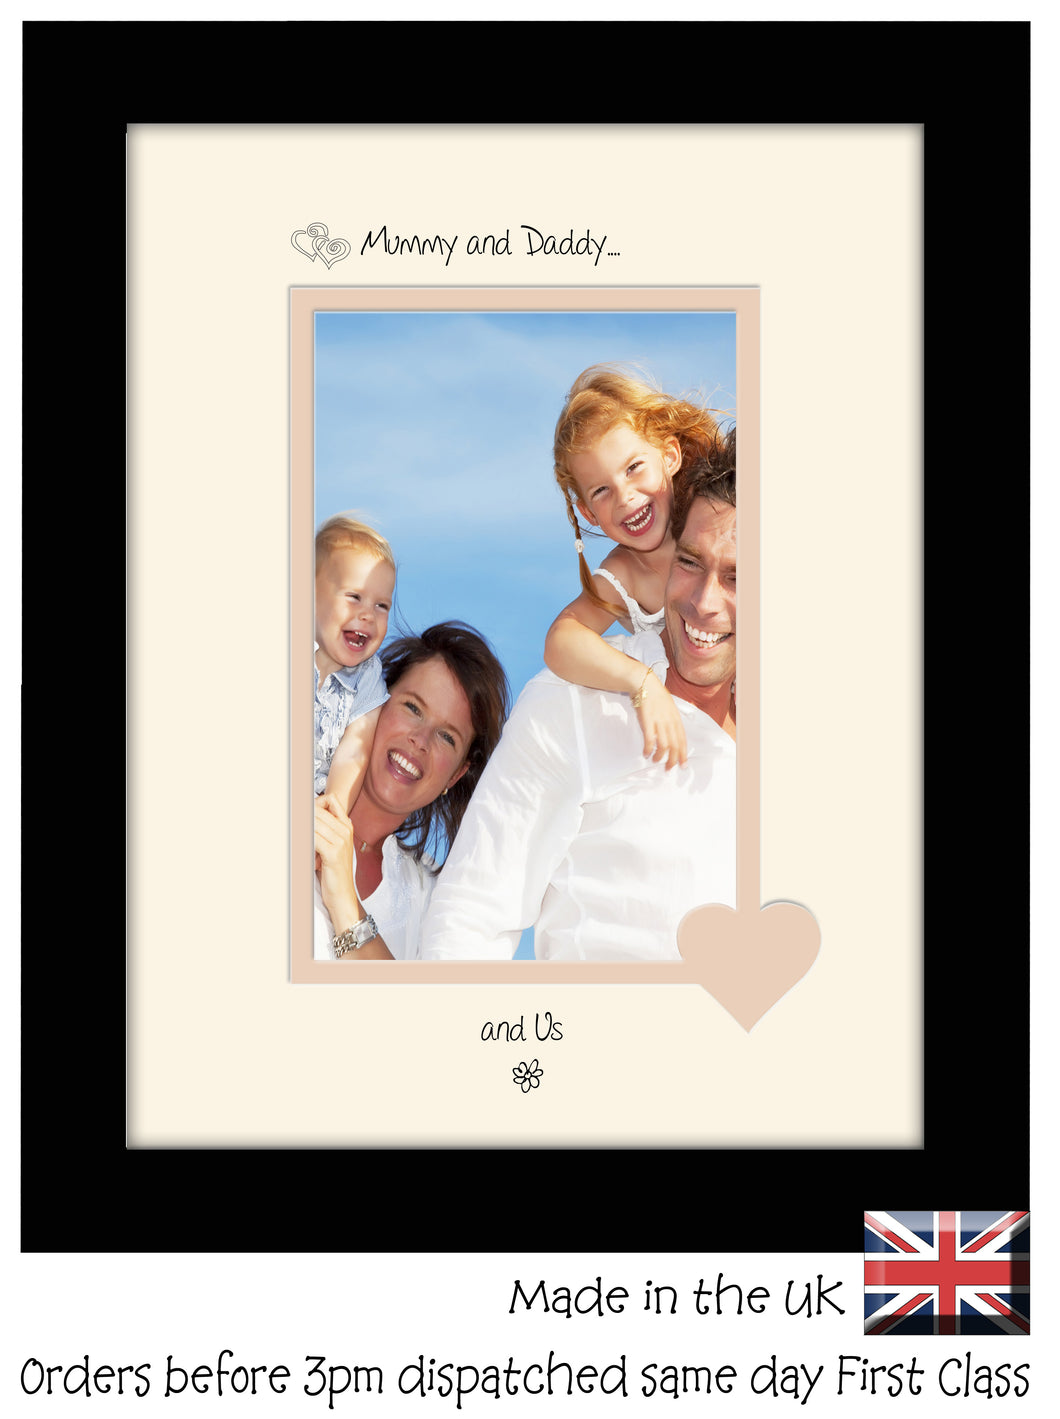 Mummy & Daddy Photo Frame - Mummy and Daddy… ...and us! Portrait photo frame 6